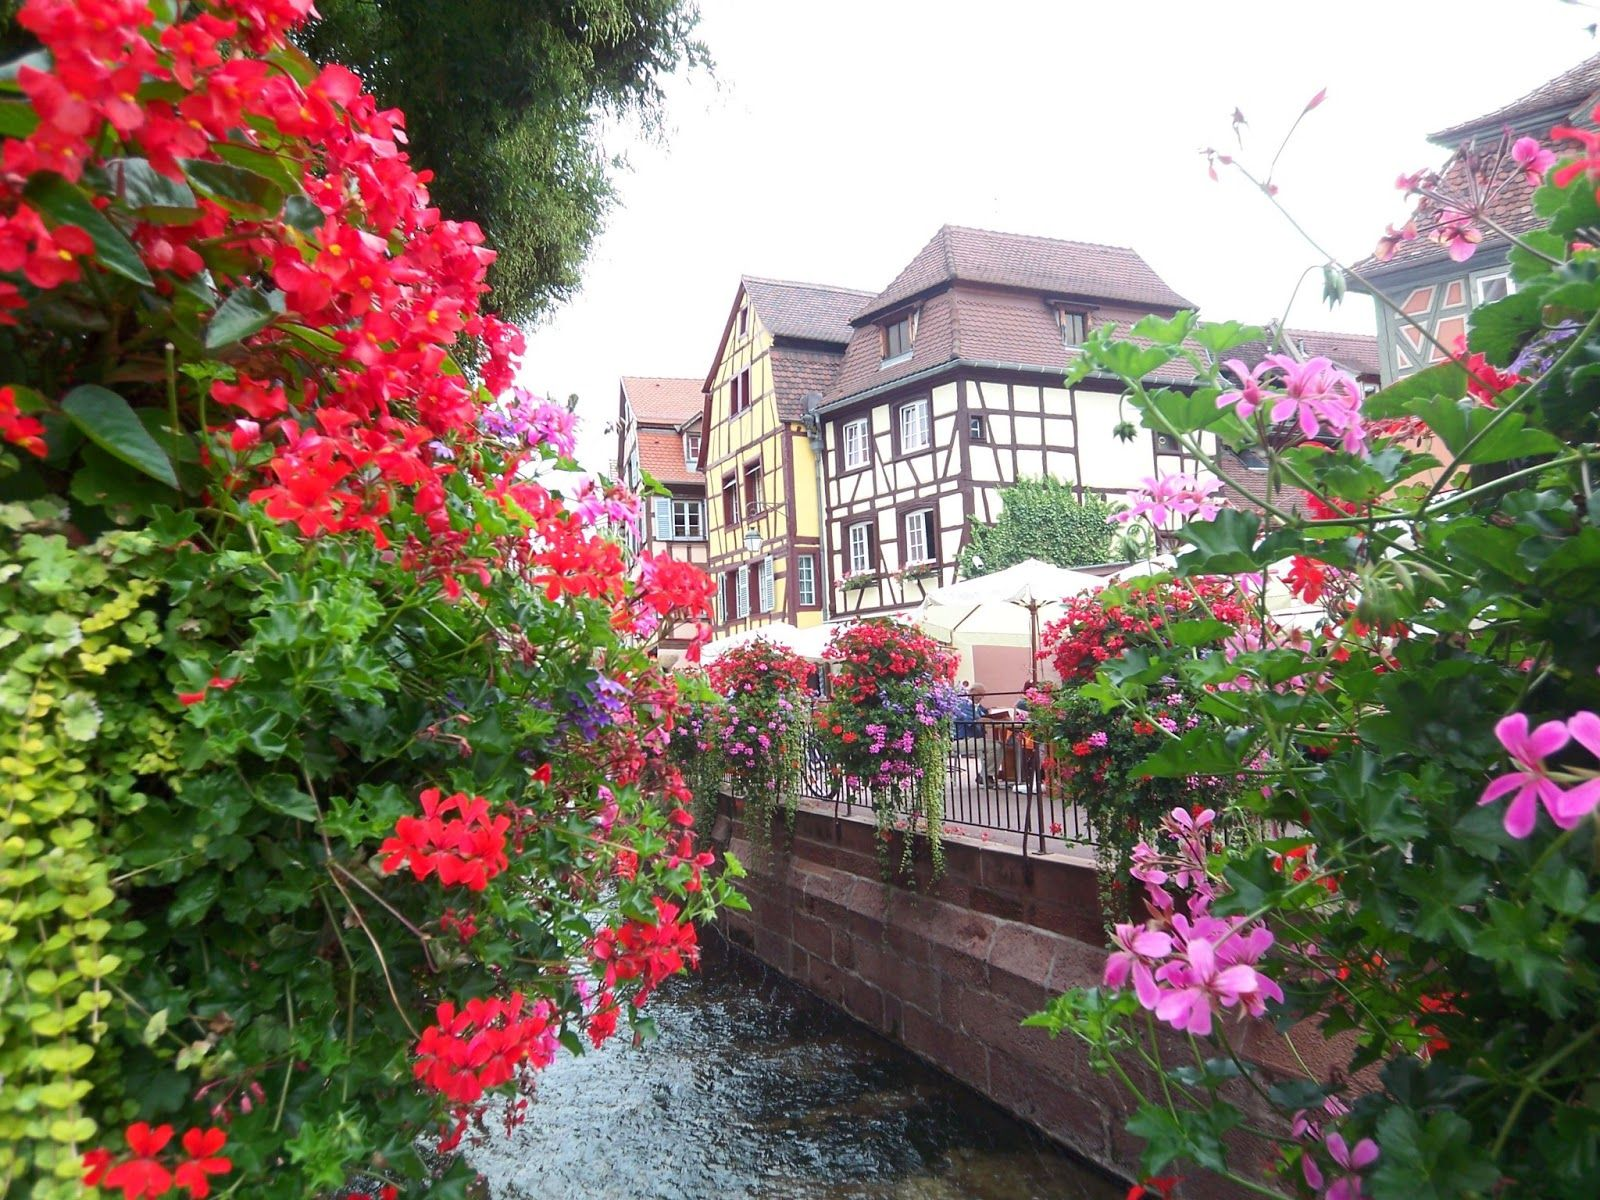 Day trip to Colmar, France: http://www.traveladdicts.net/2008/02/colmar-france.html#more